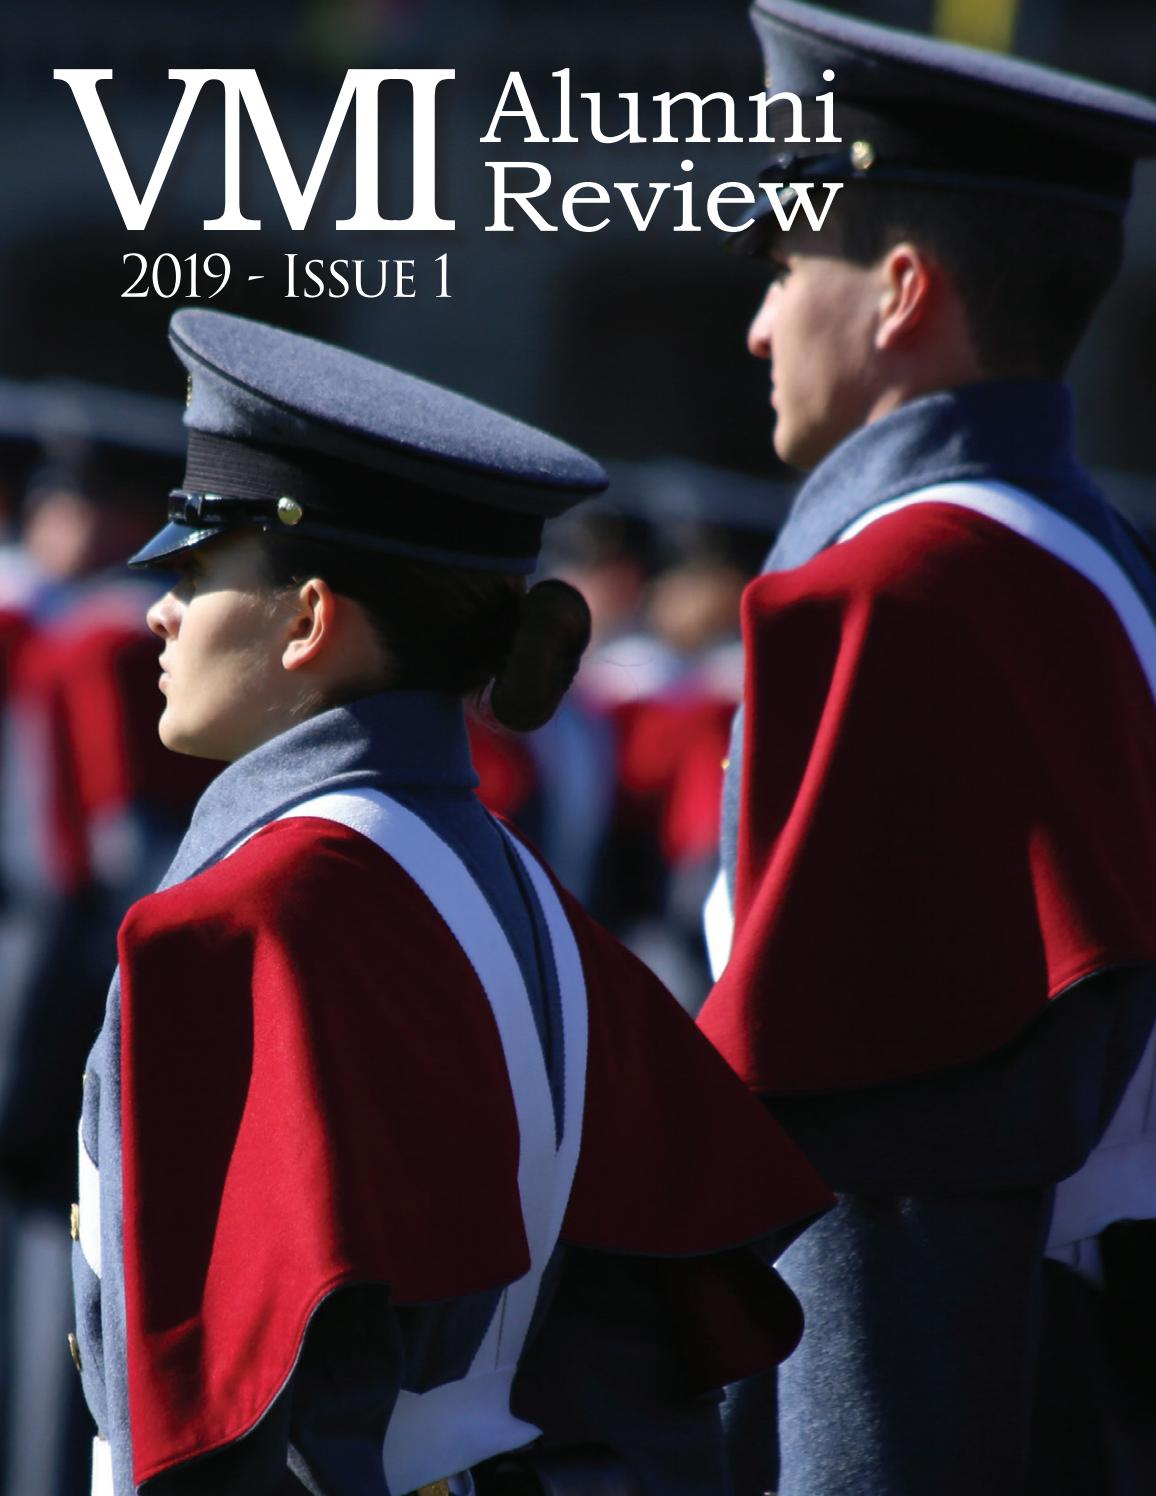 08ee8de60 2019-Issue 1 Alumni Review by VMI Alumni Agencies - issuu